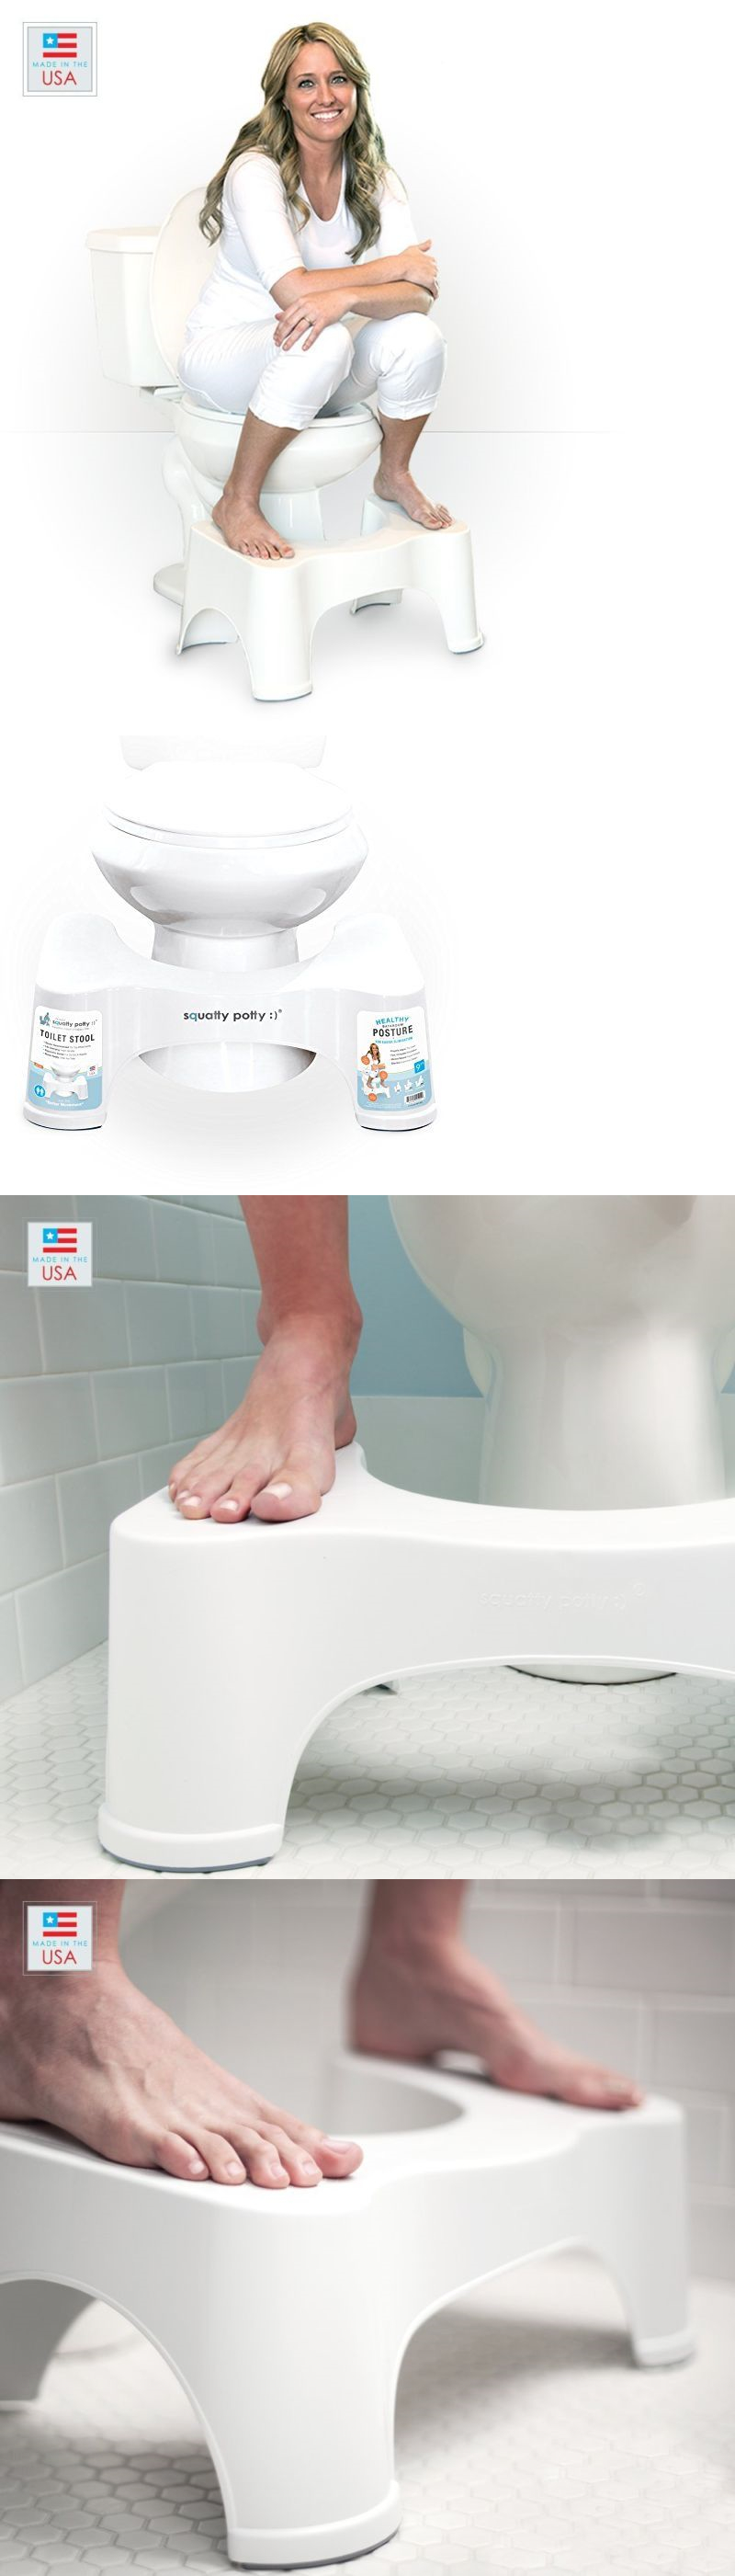 Other Health Care Supplies: Squaty Potty Toilet Stool Squat Bathroom ...